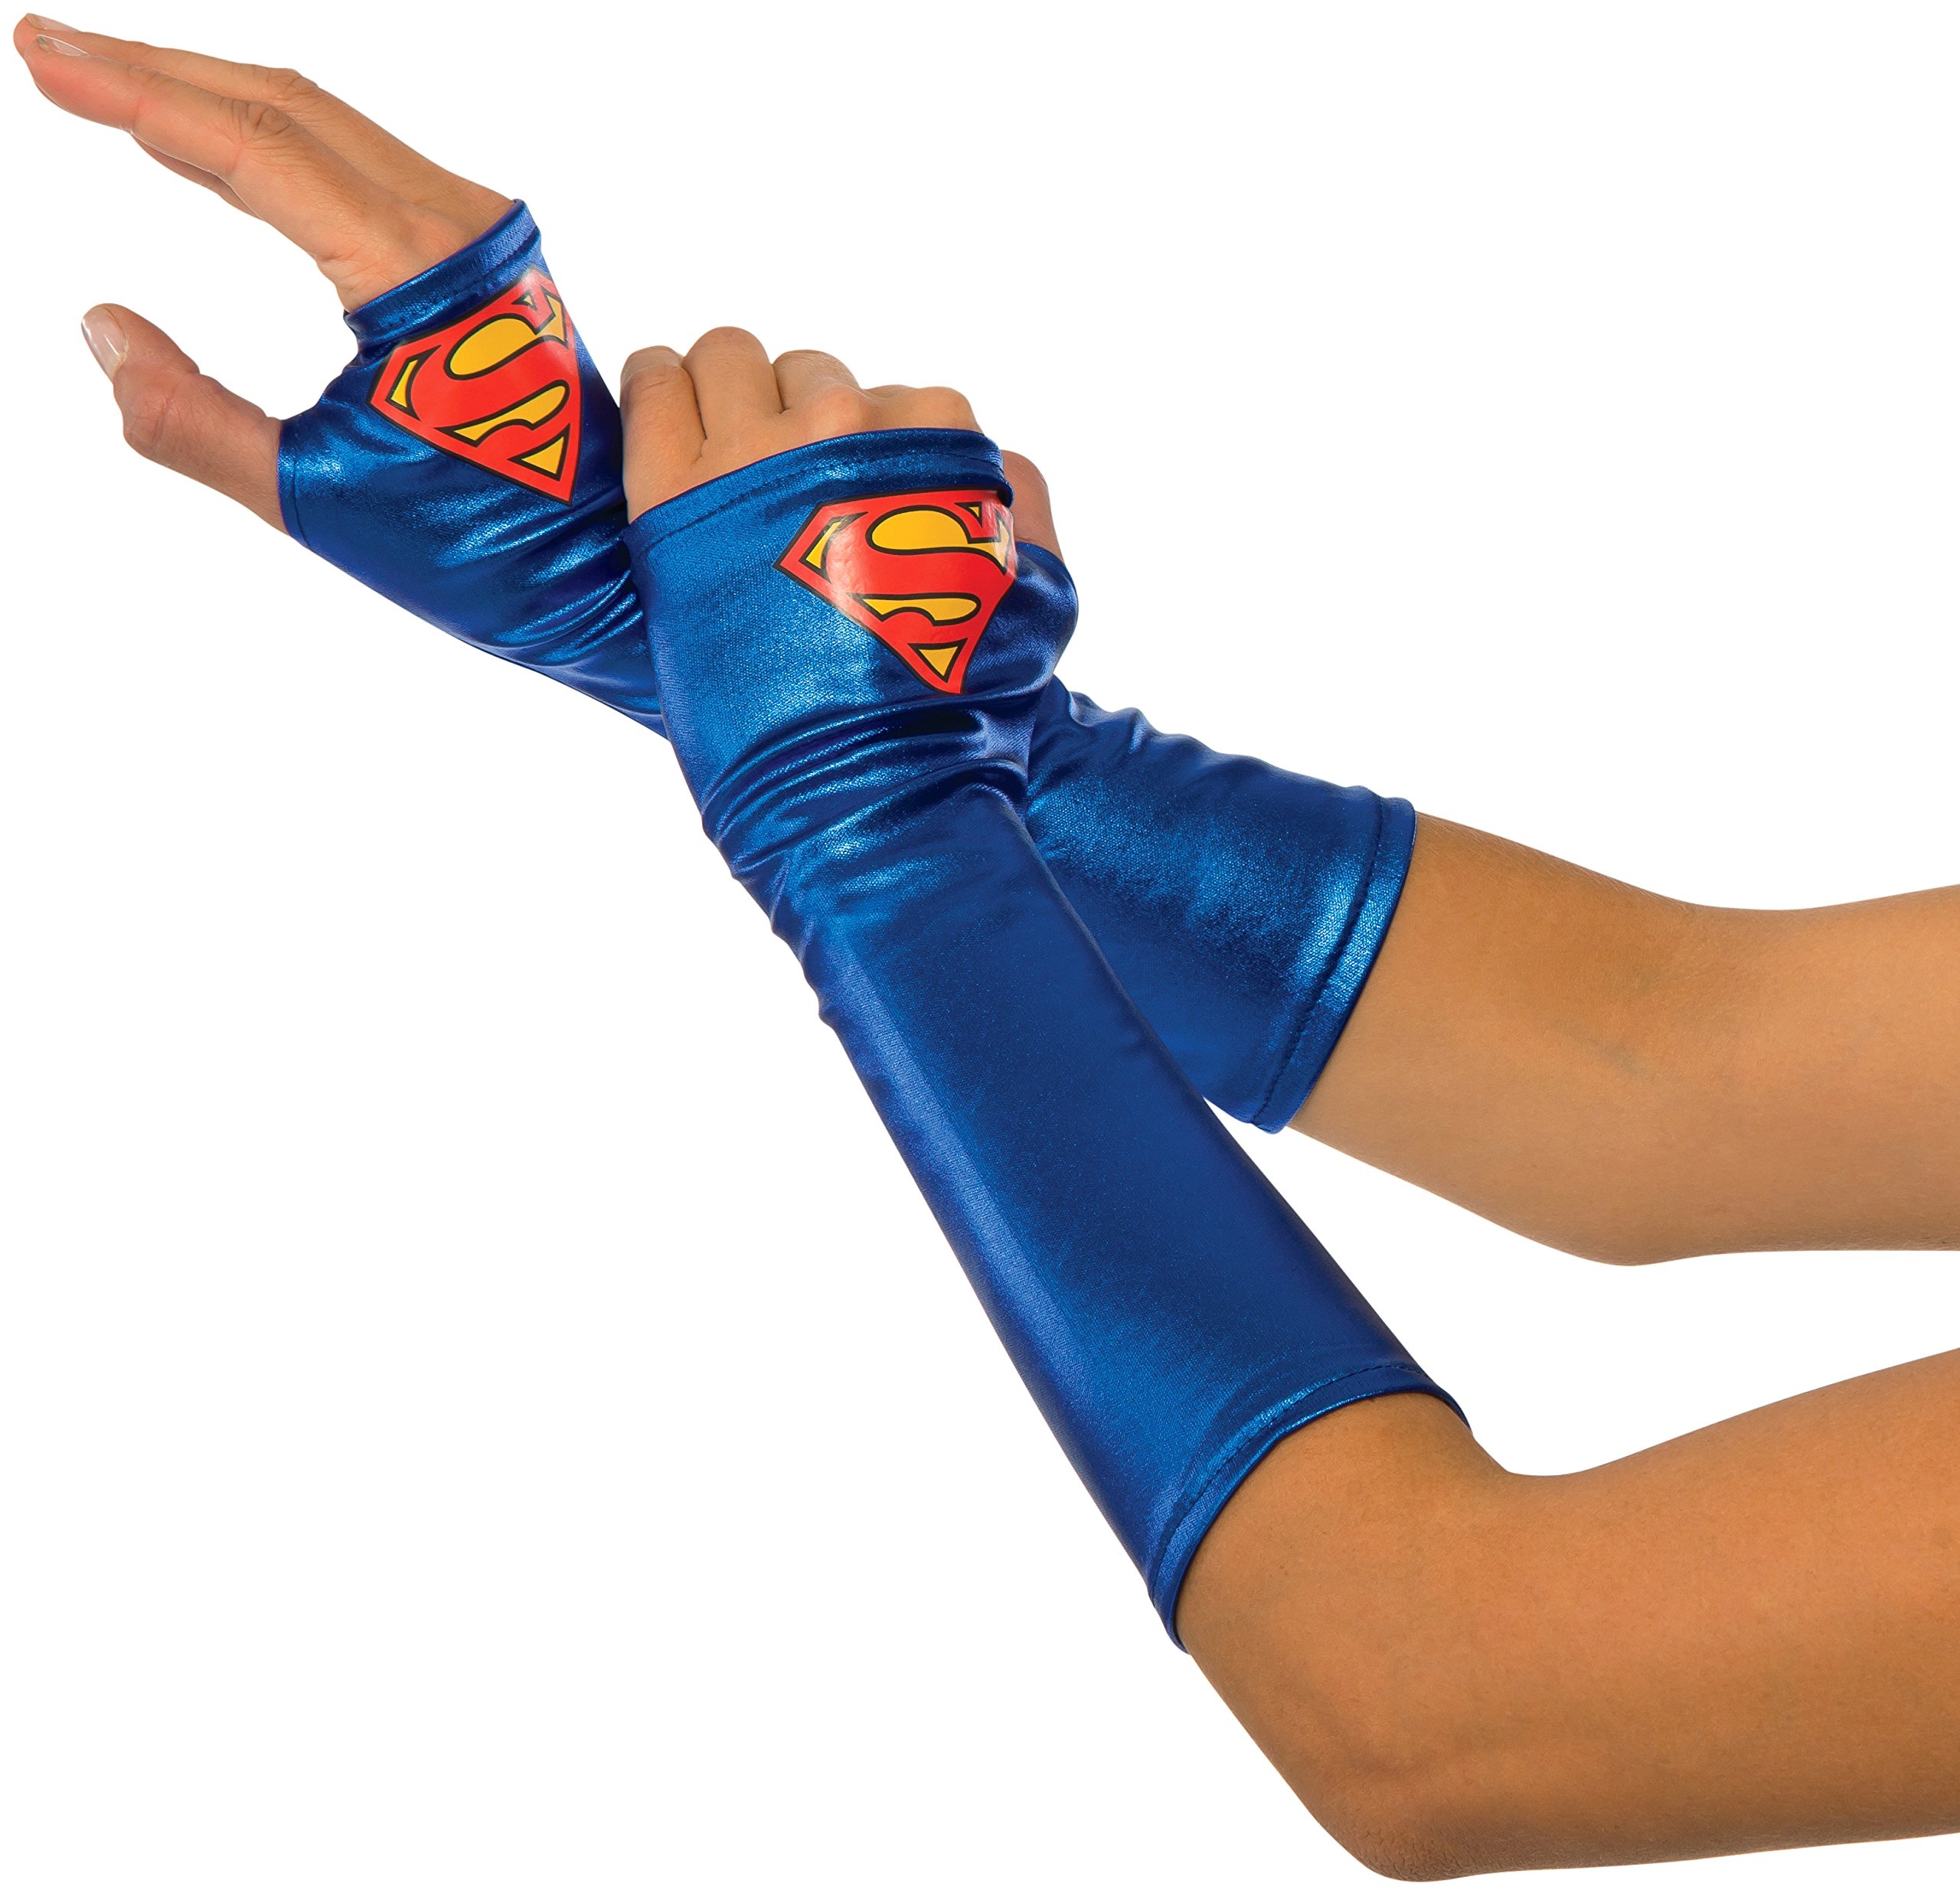 Rubie's Women's DC Superheroes Supergirl Gauntlets, Multi, One Size